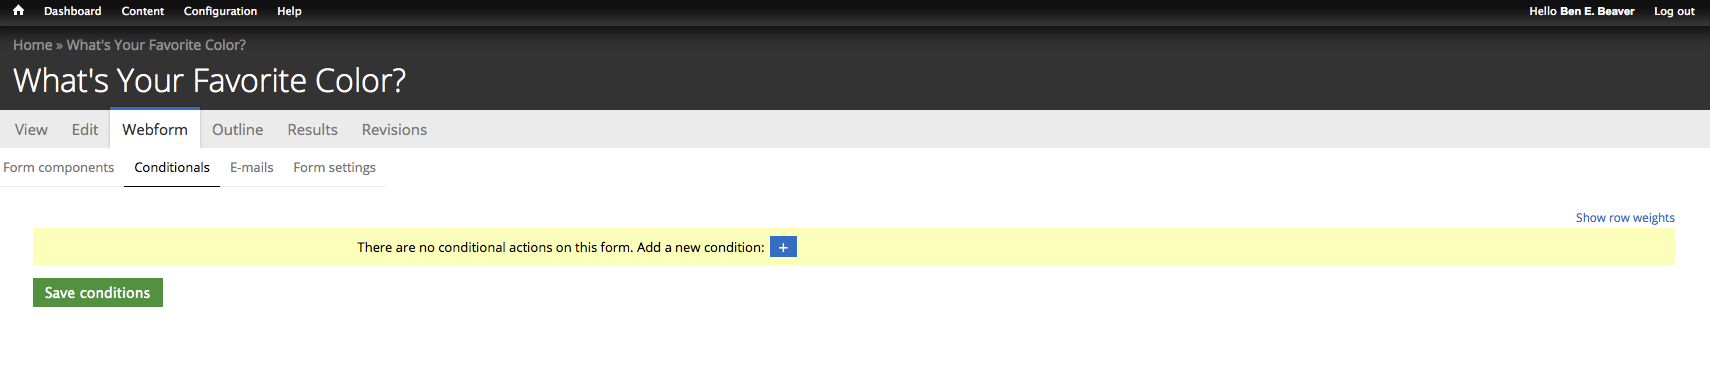 conditionals tab contents with no conditionals added yet